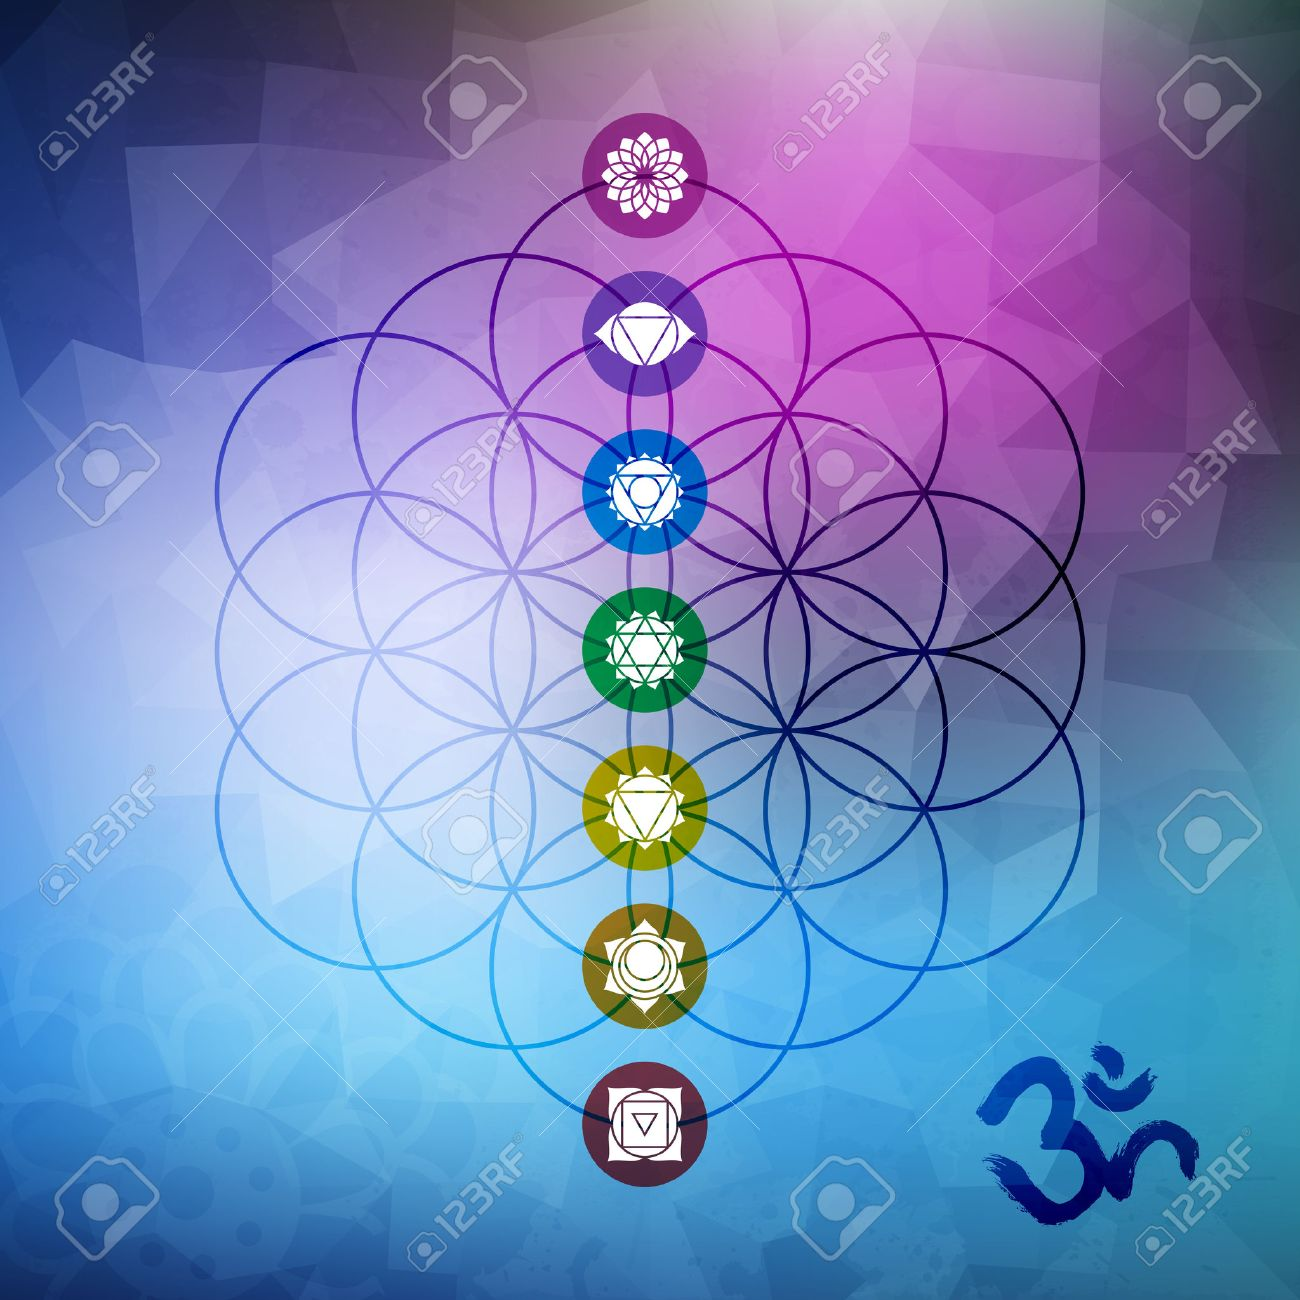 71 908 Flower Of Life Cliparts Stock Vector And Royalty Free